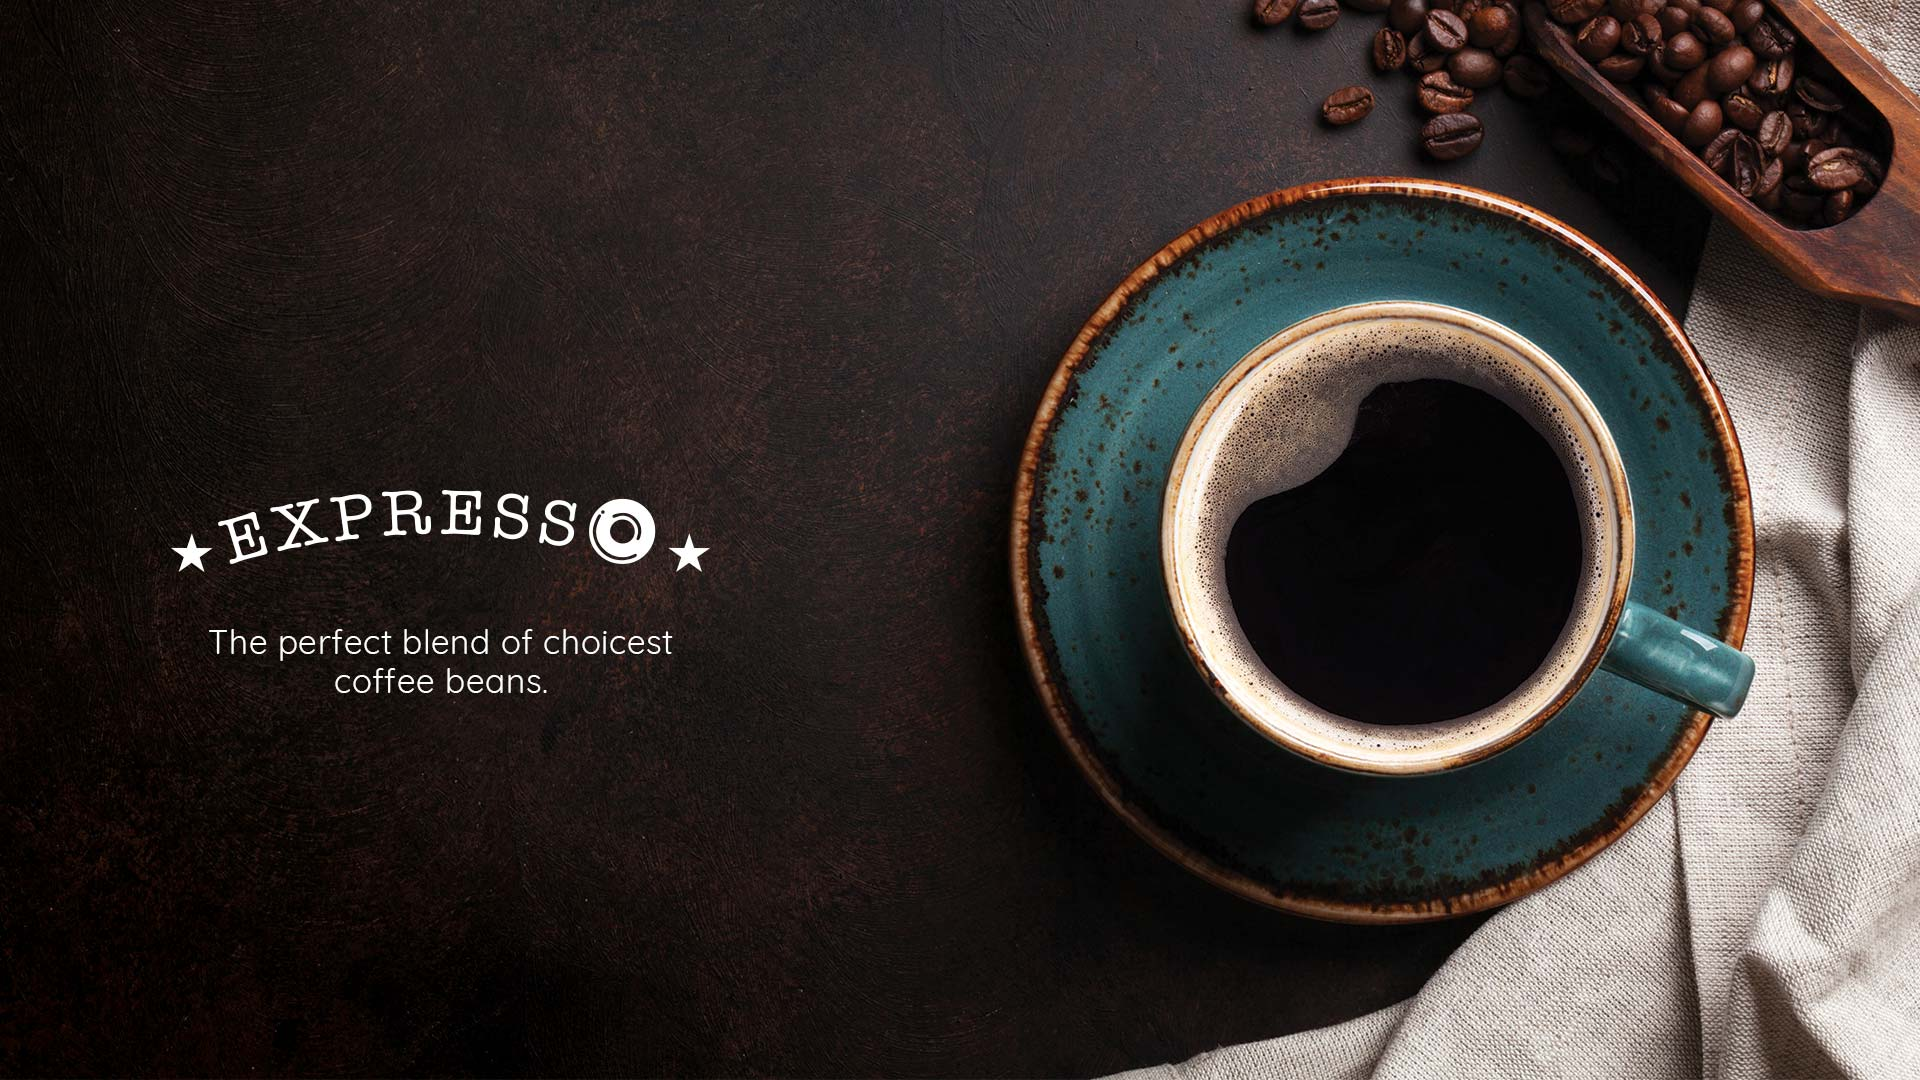 About Expresso